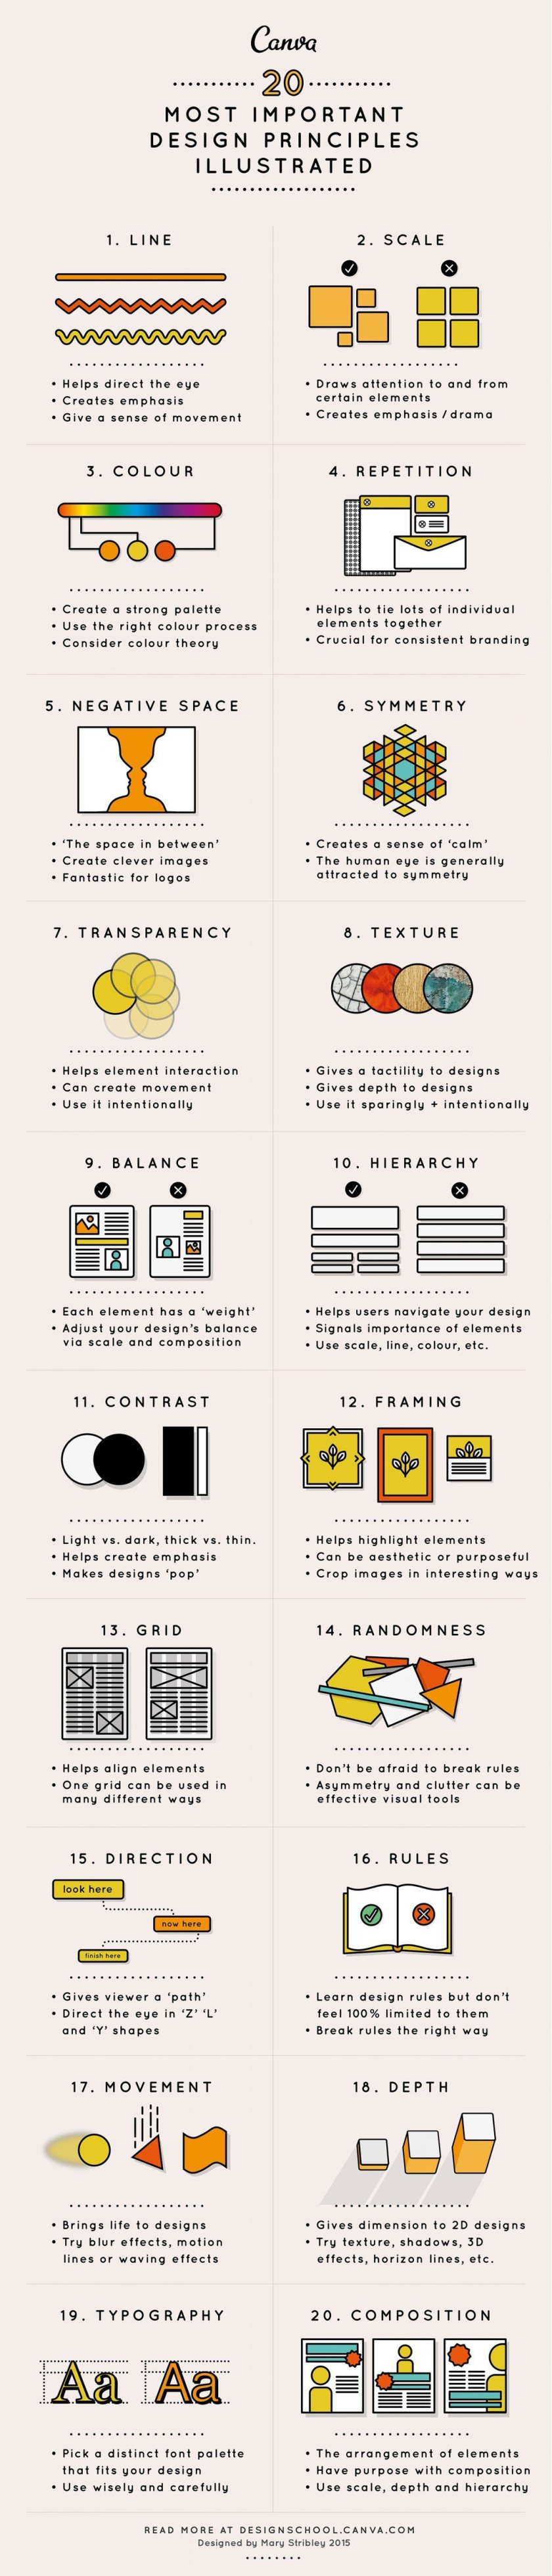 design-principles-infographic